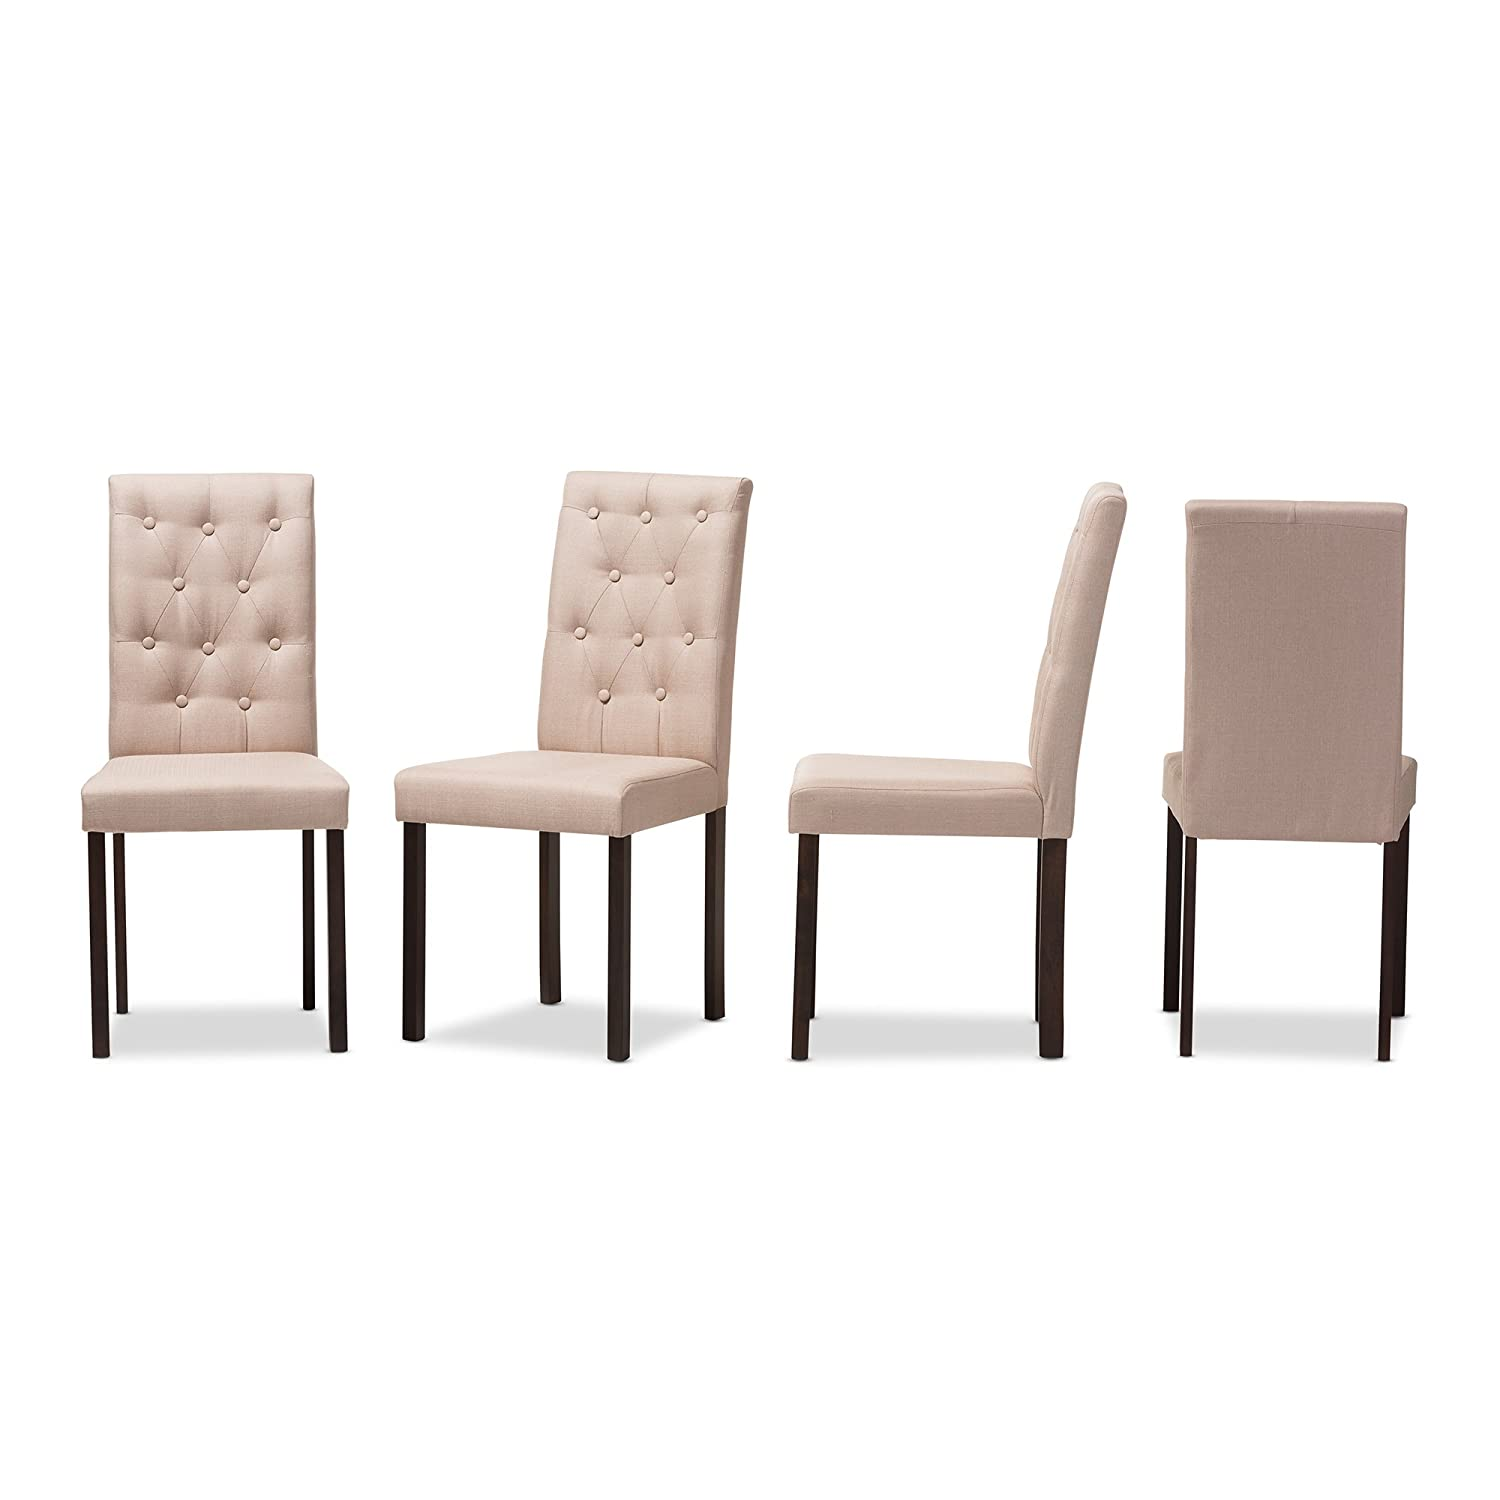 Set of 4 Baxton Studio Claire Dark Brown Finished Fabric Upholstered Dining Chair Beige Wholesale Interiors 424-7131-AMZ